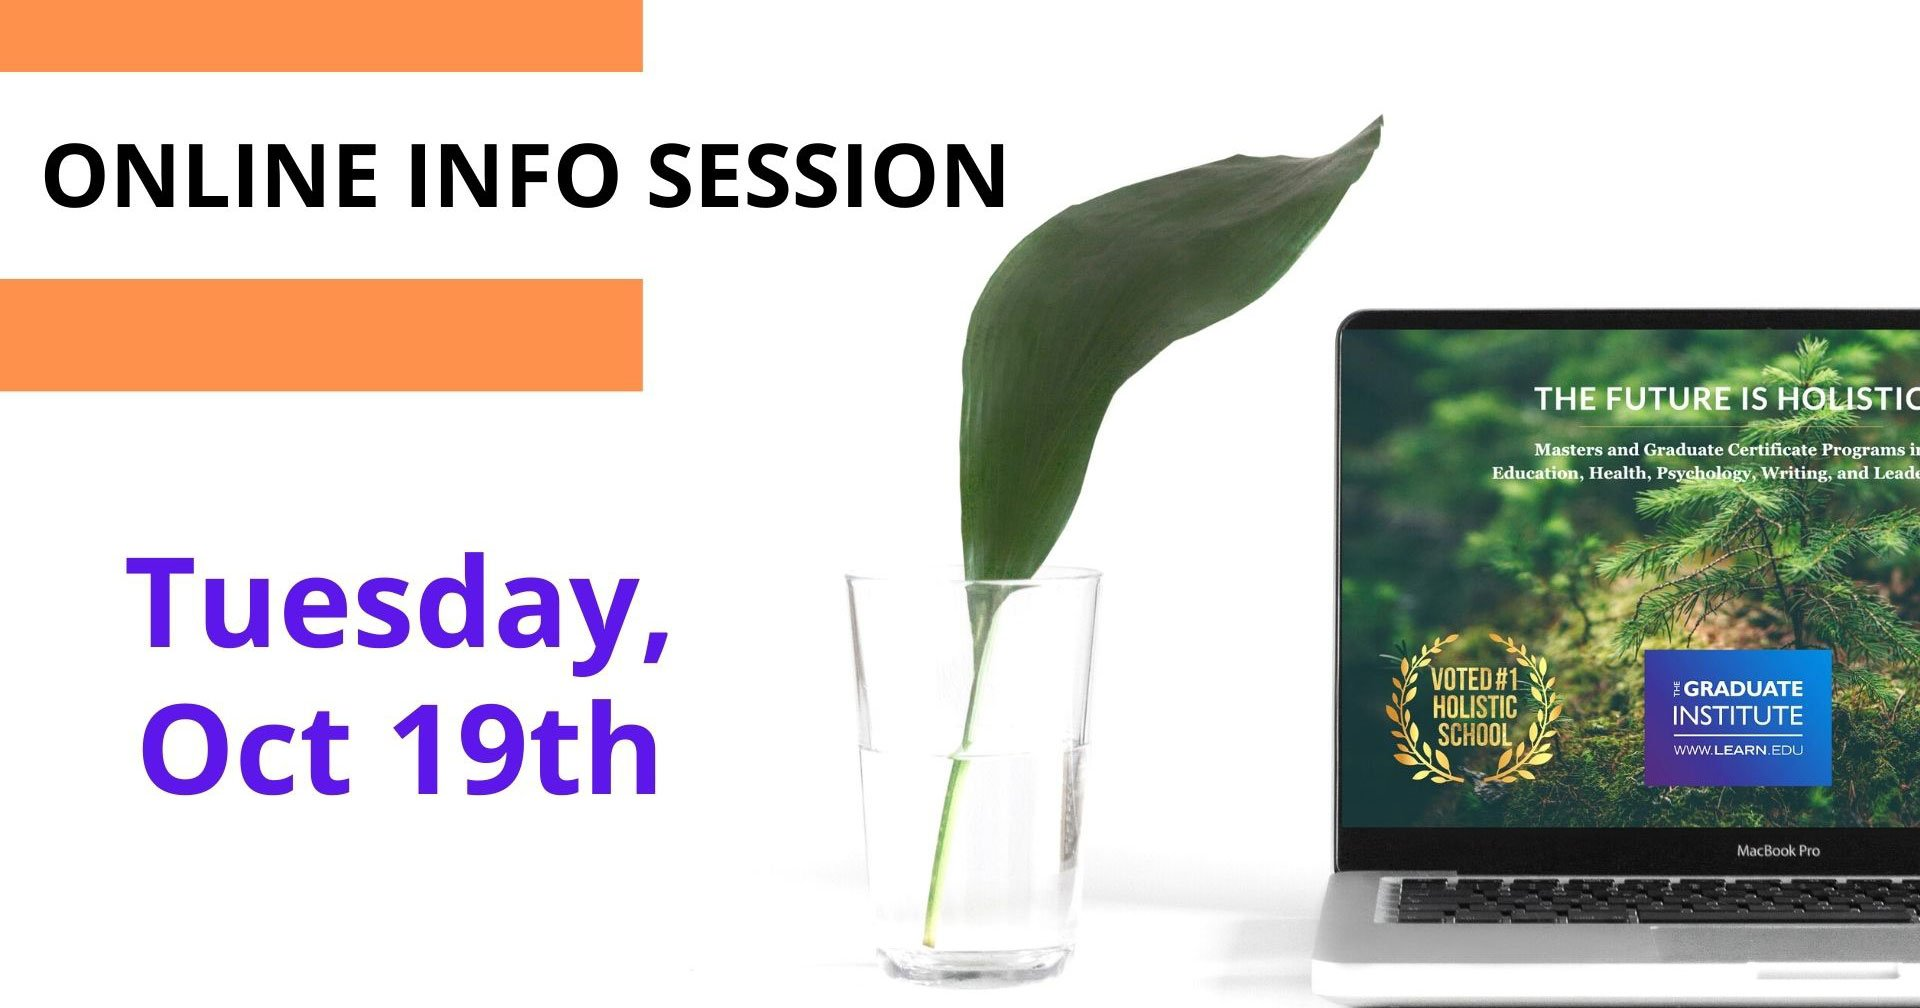 Online Info Session Oct 19th